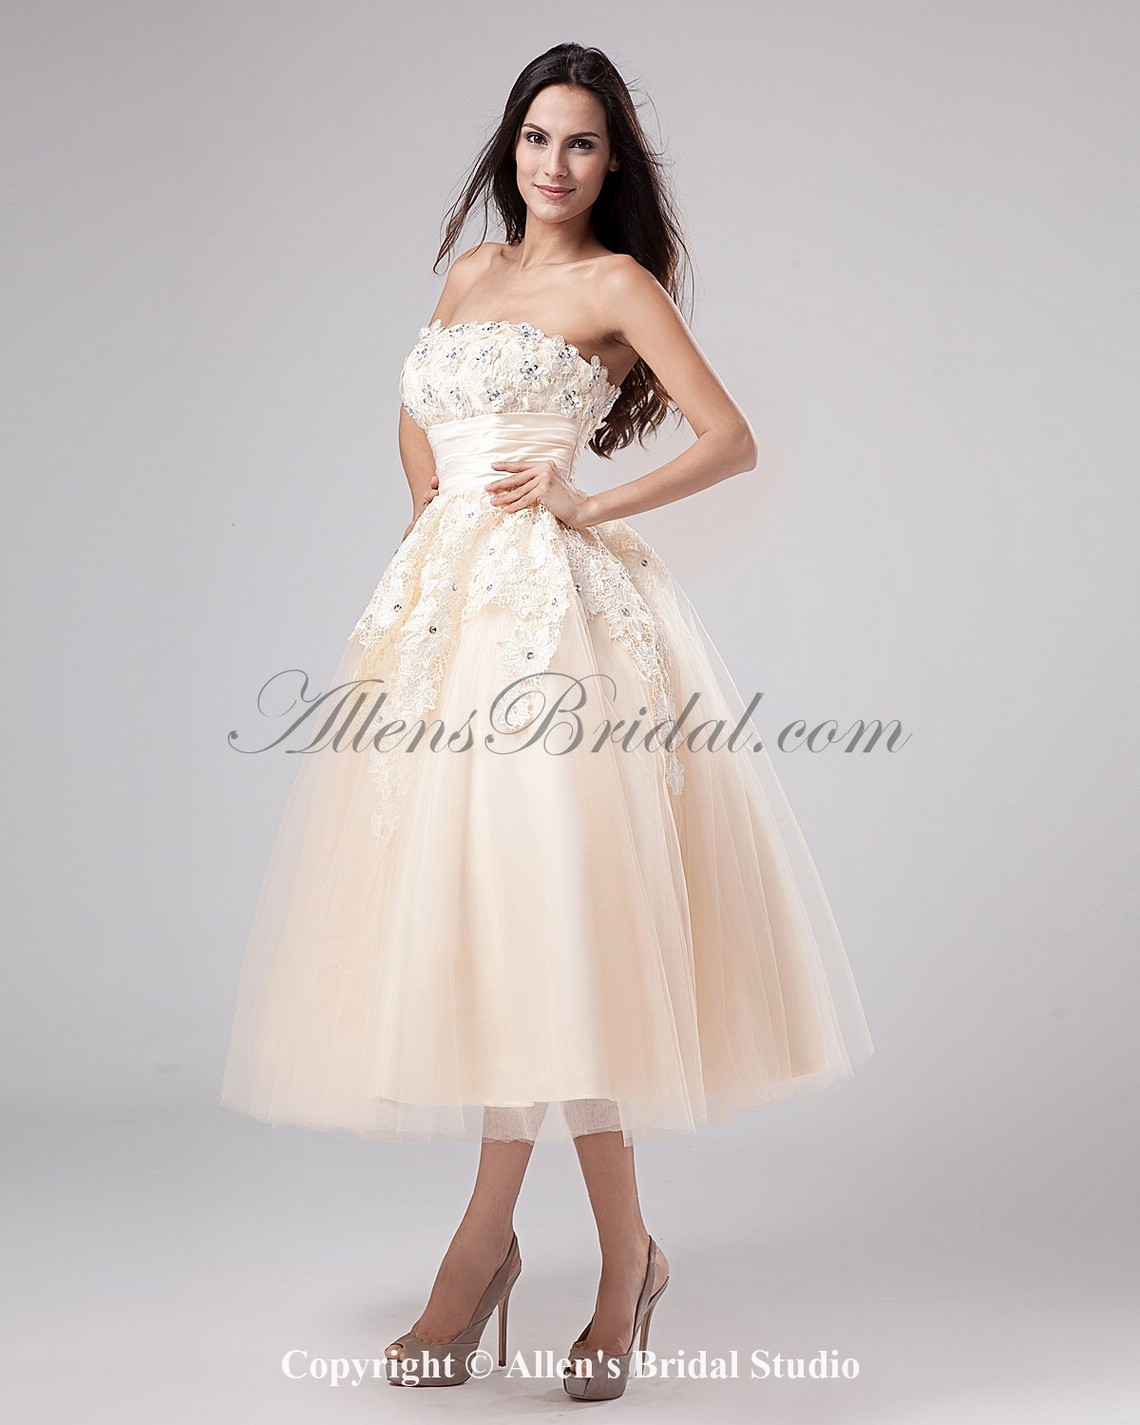 /1785-14110/satin-and-net-strapless-tea-length-ball-gown-wedding-dress.jpg